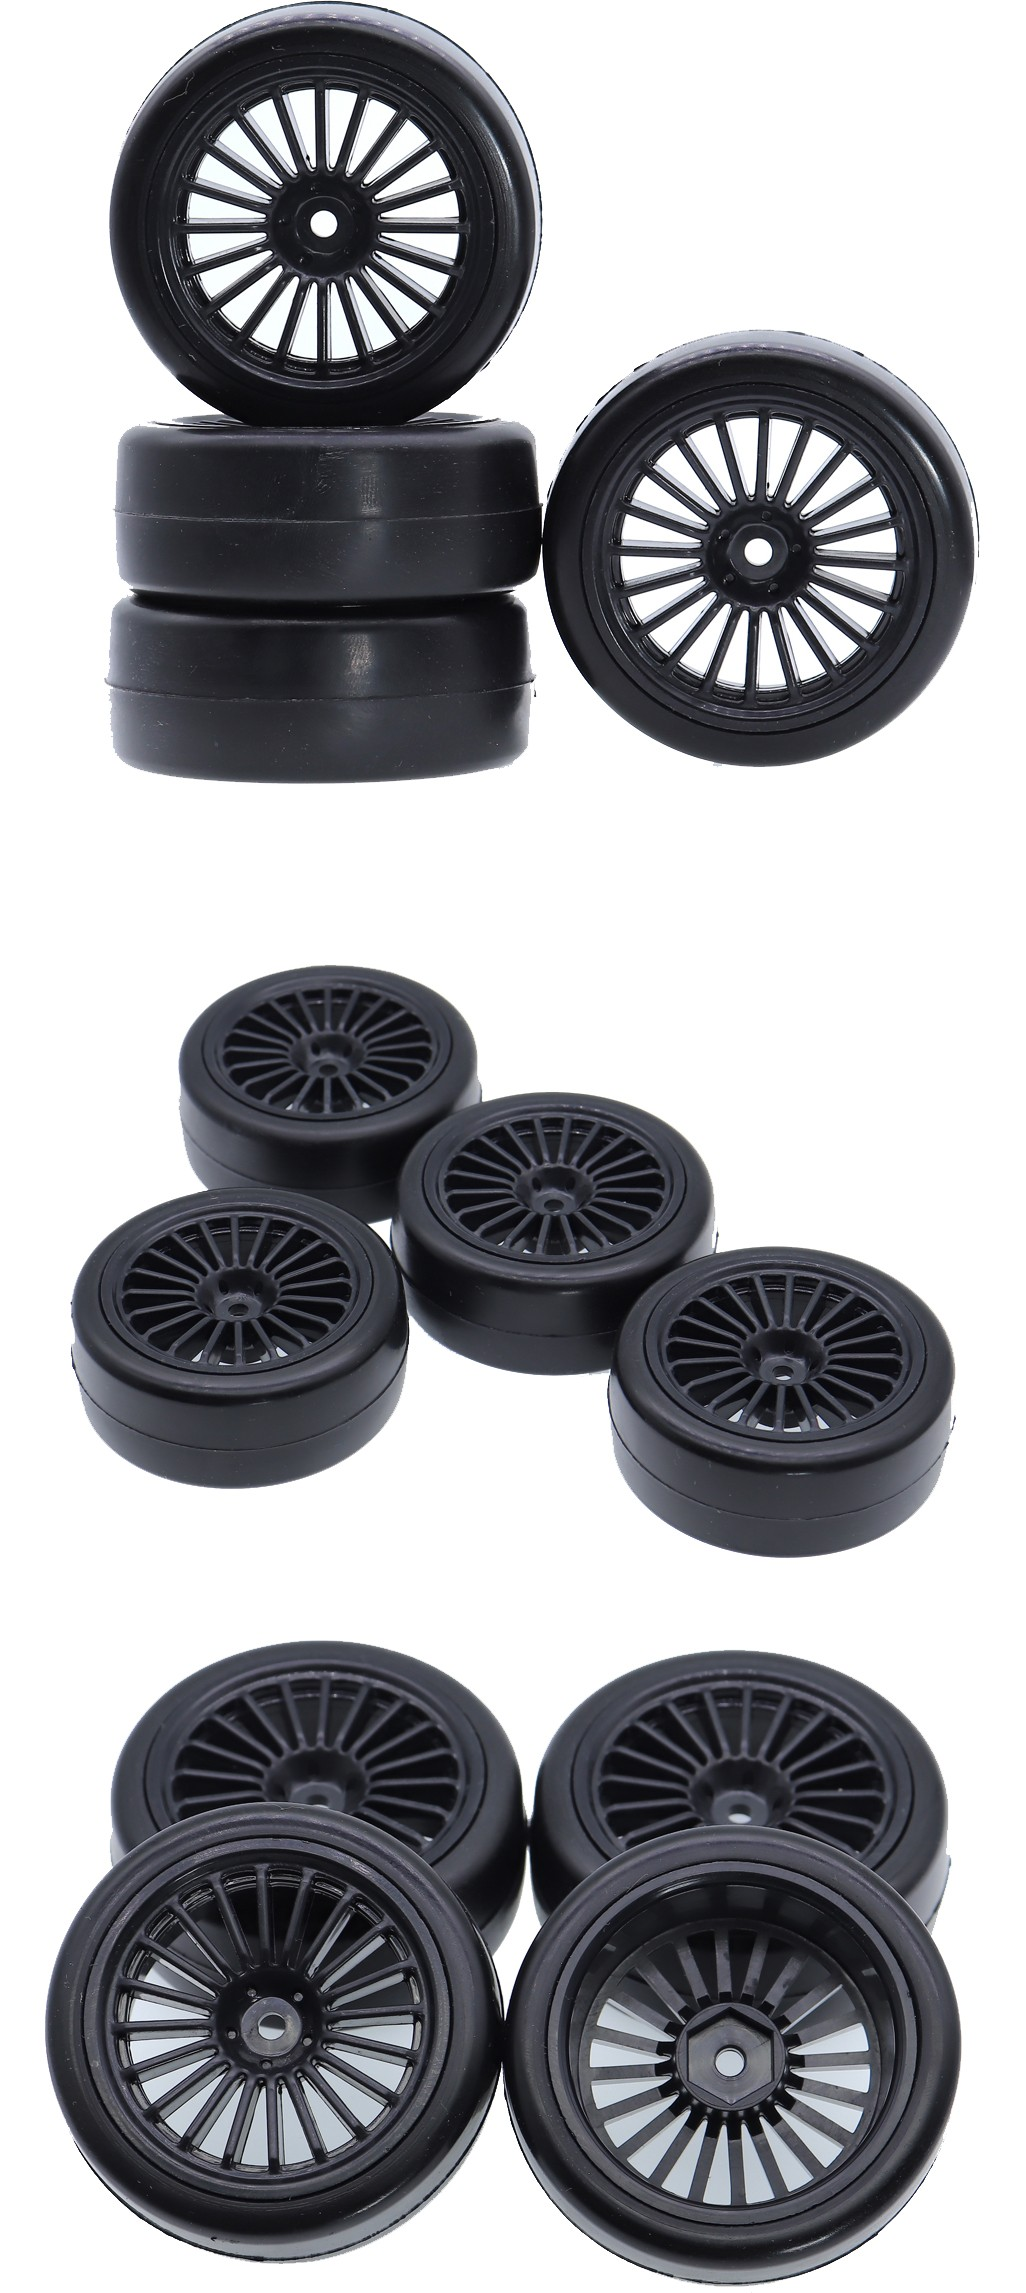 4Pcs On Road Wheel Hub Soft Rubber Tires